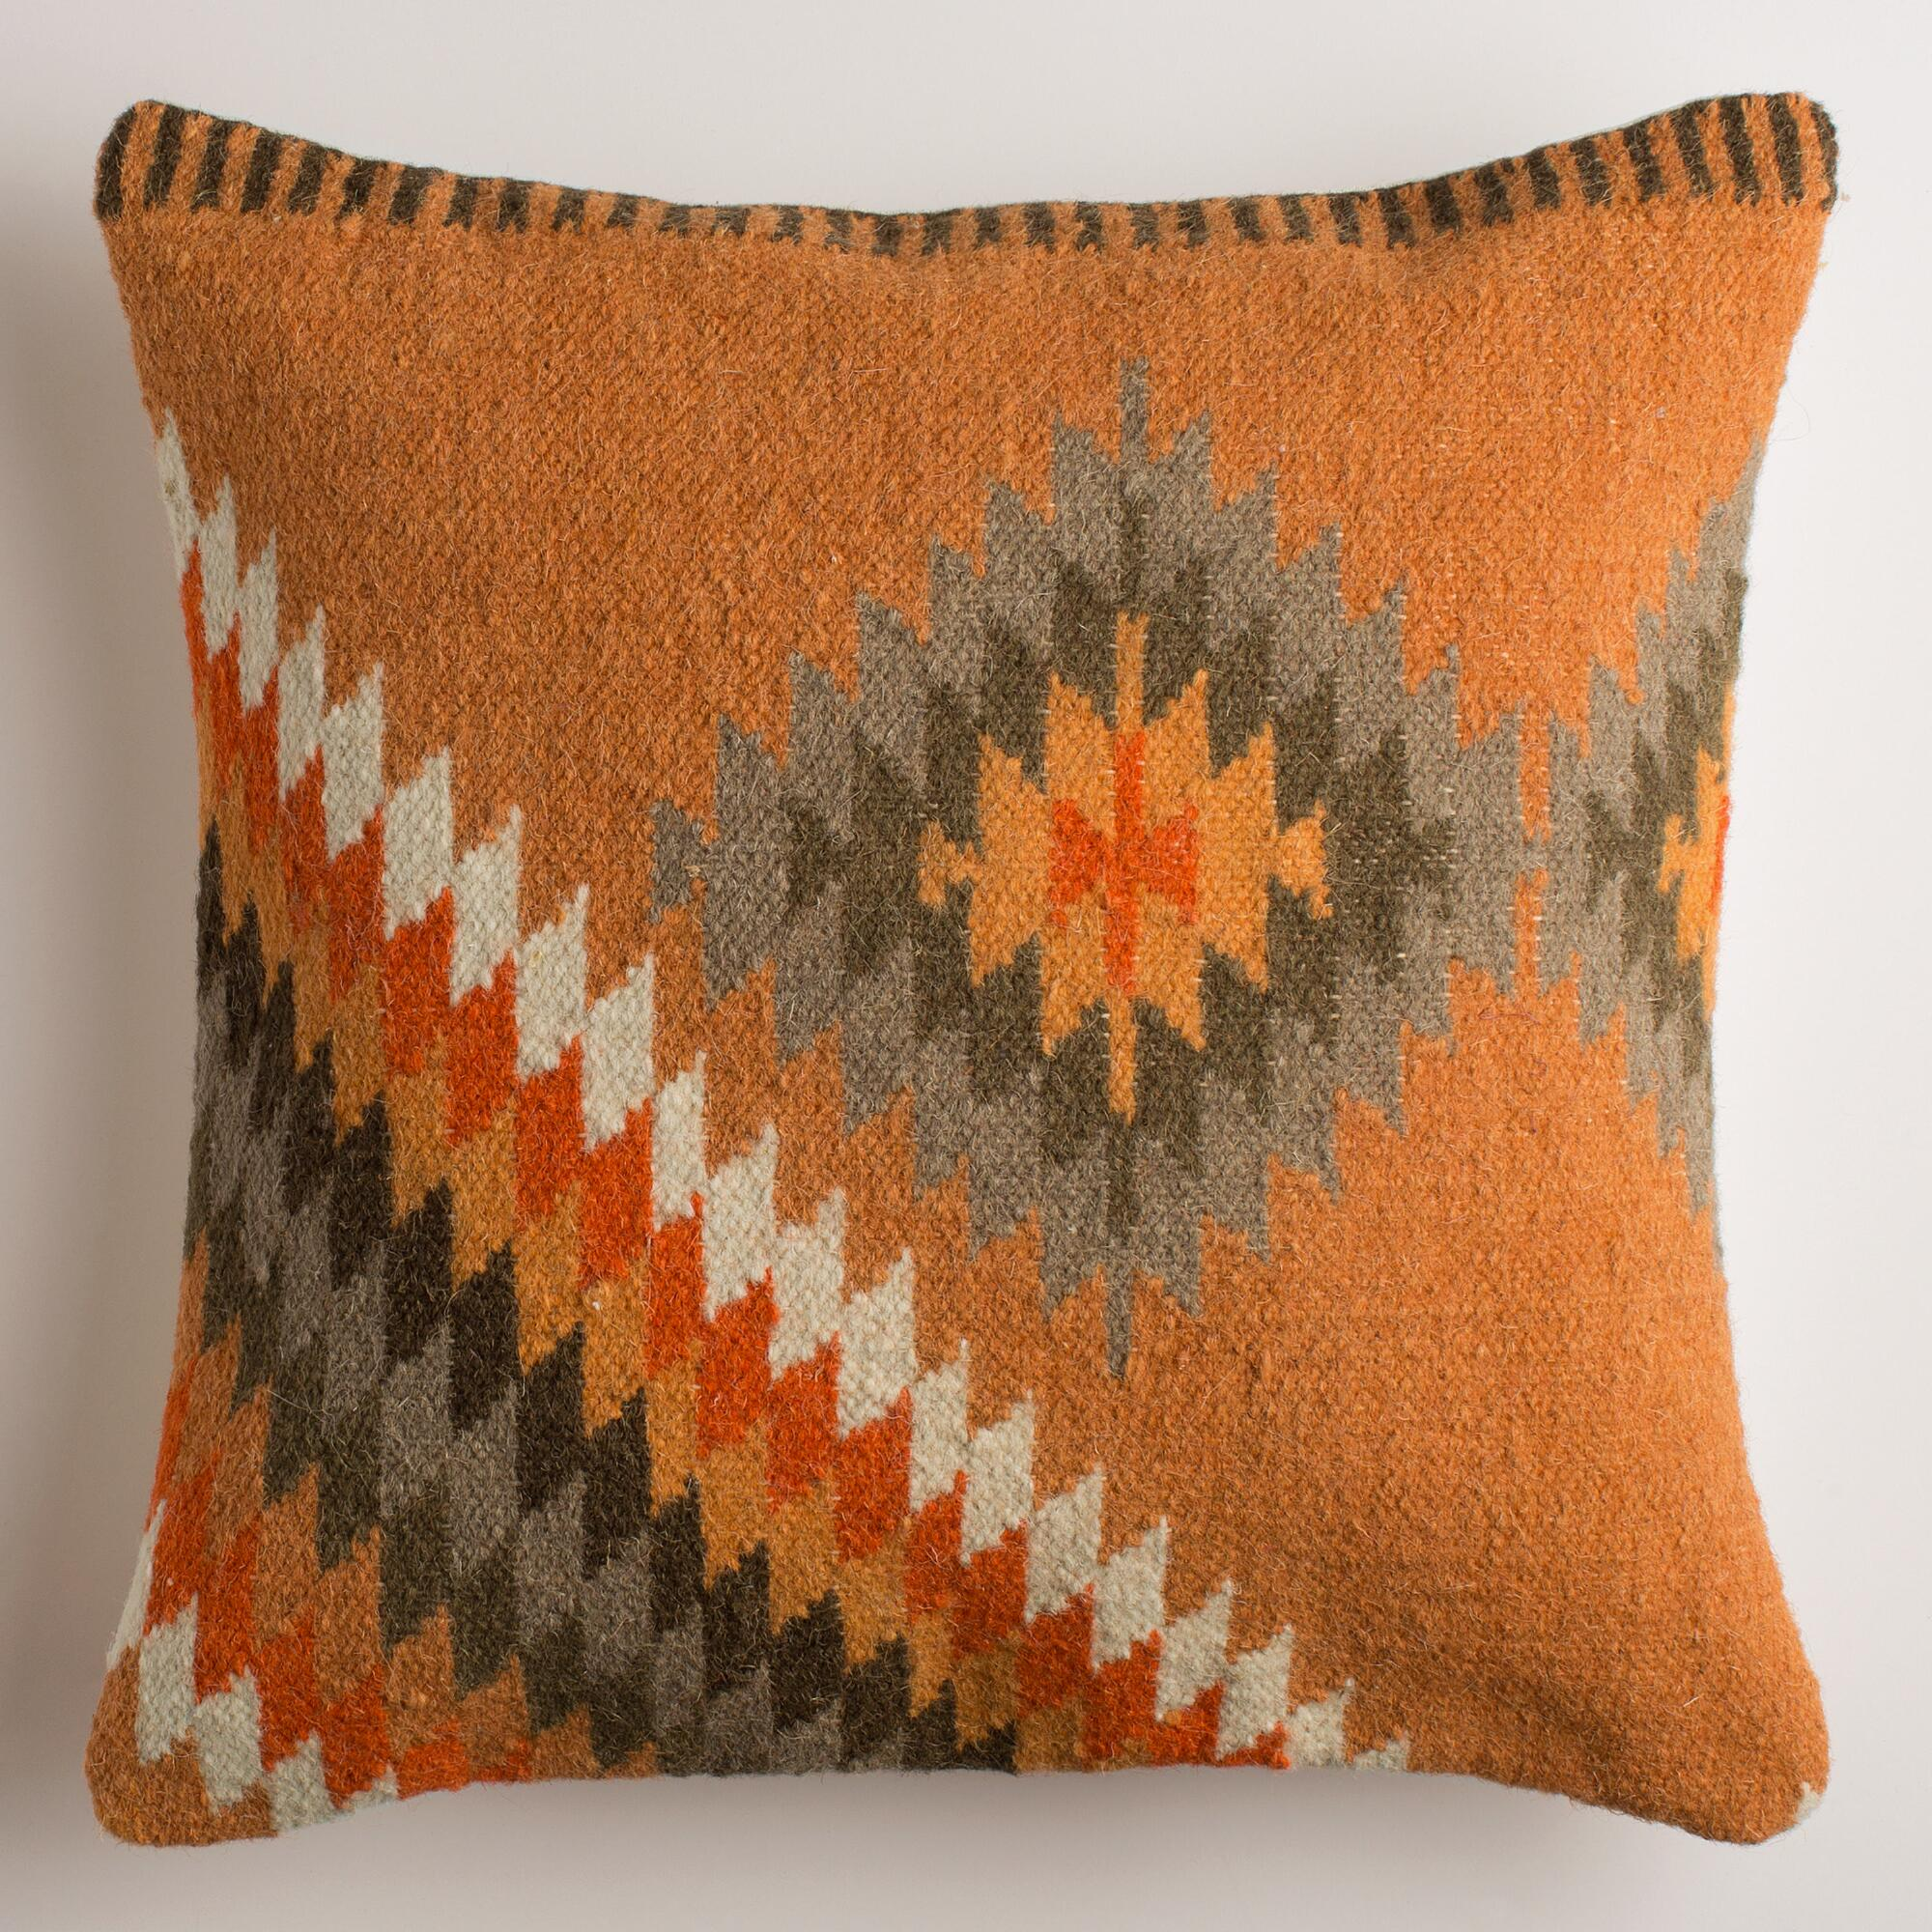 Throw Pillows With Orange : Orange Montesilvano Wool Throw Pillow World Market